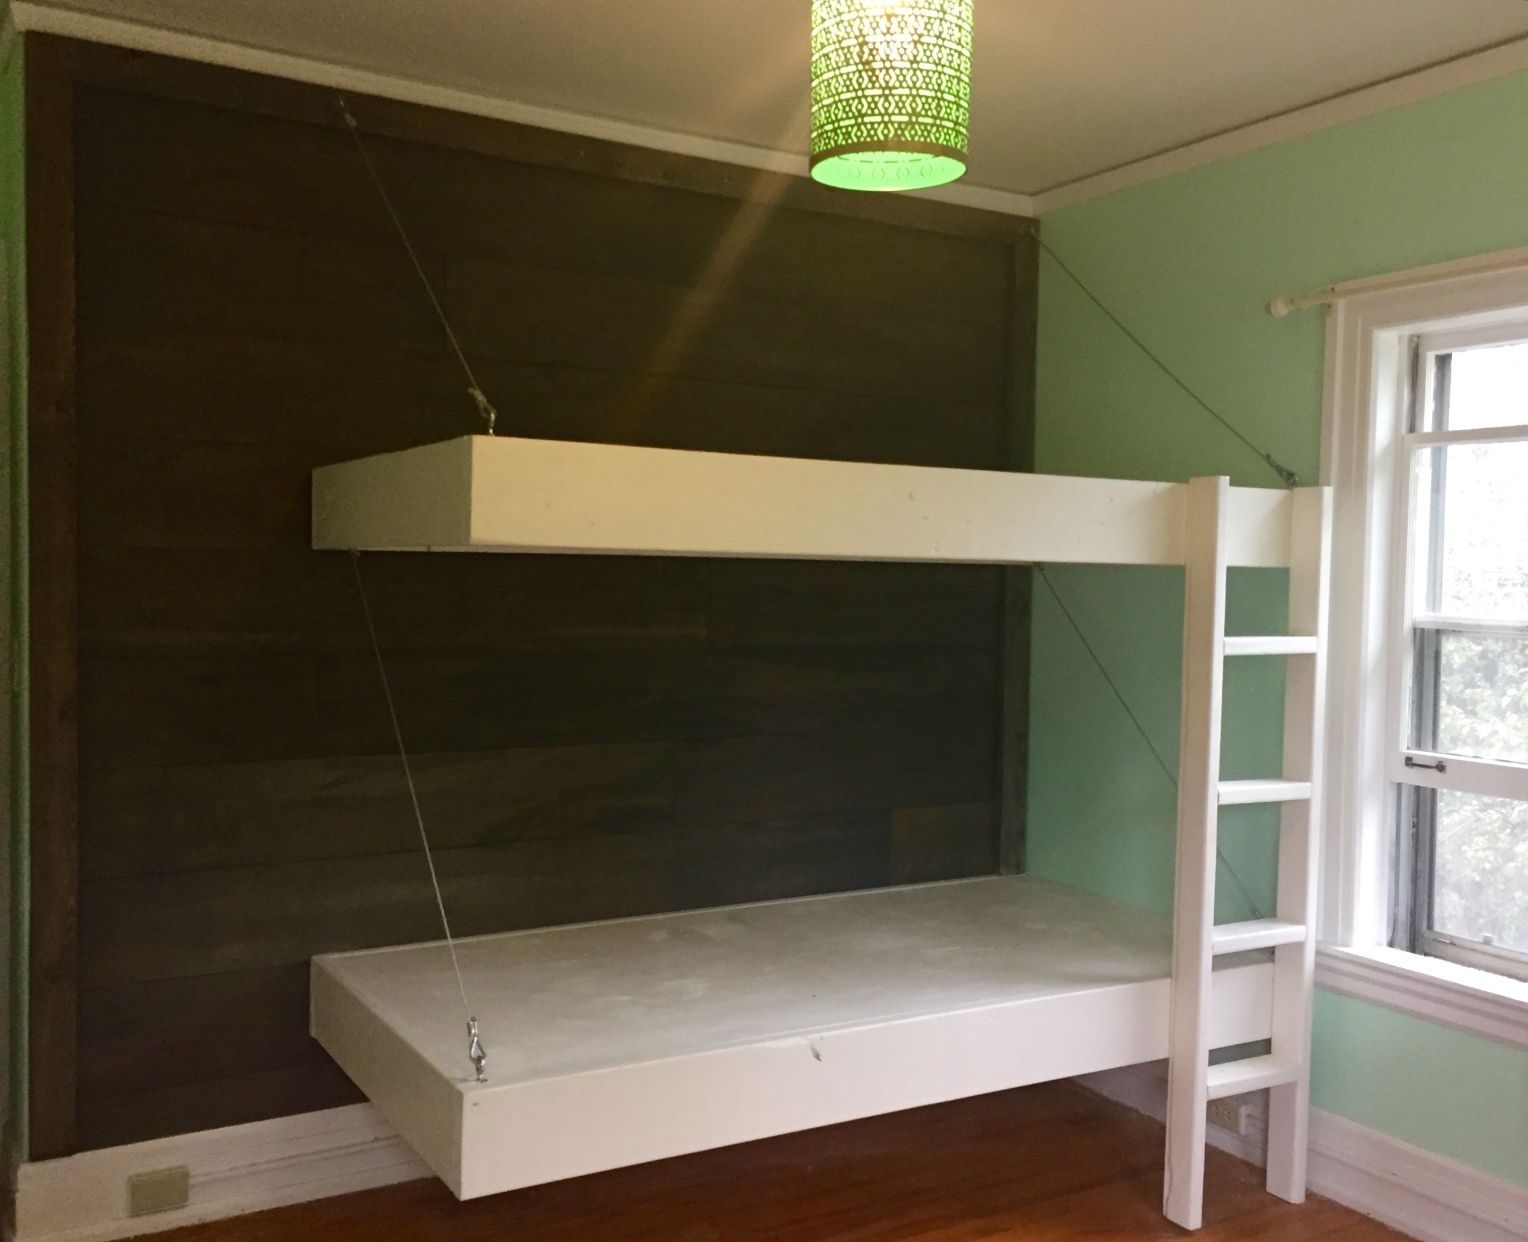 BOOM DIY Planked Walls and Floating Furniture Bunk beds